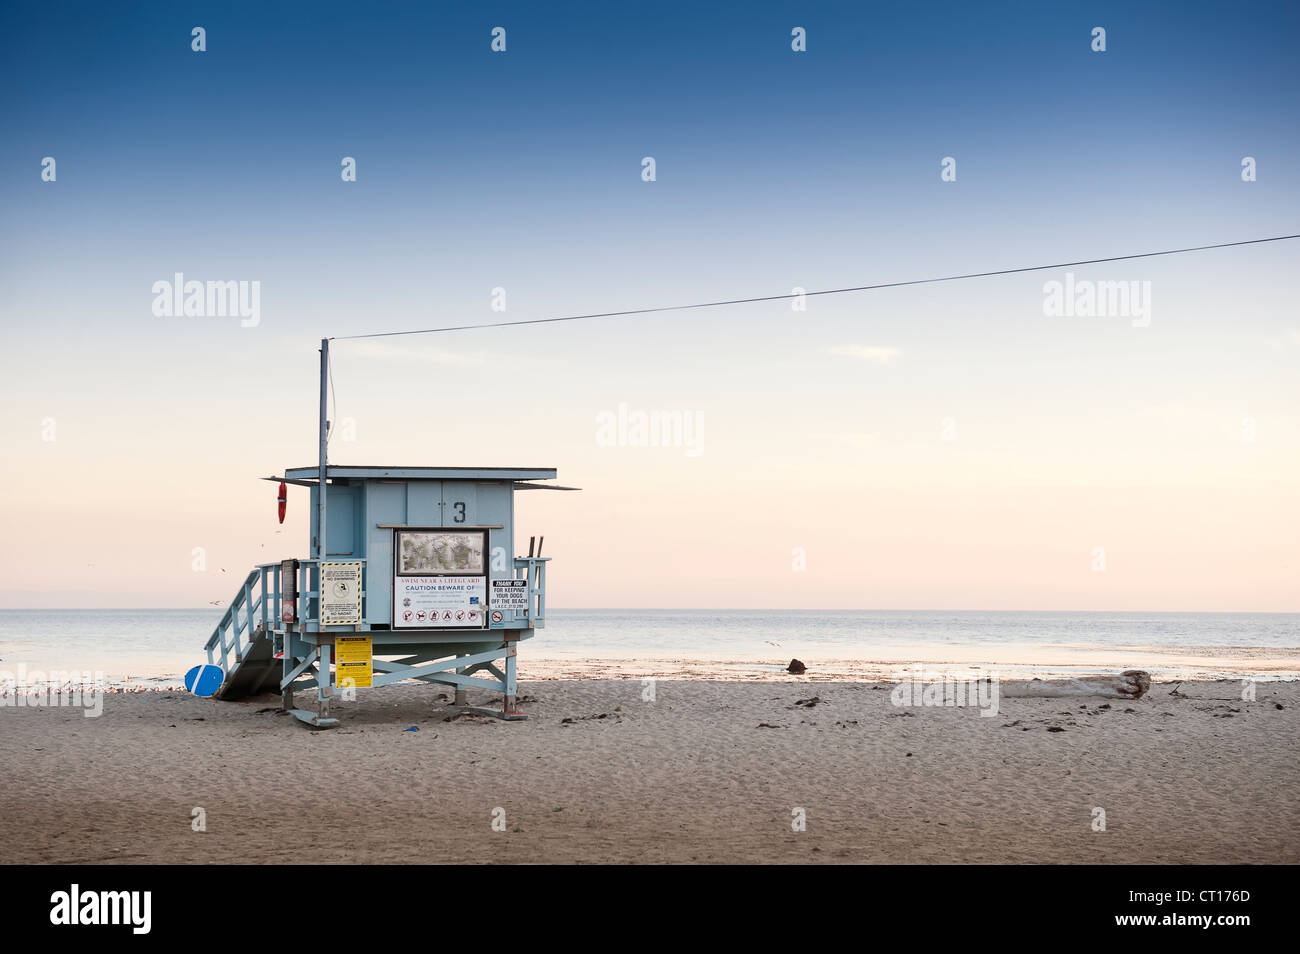 c40370803bc1 Rescue Hut Stock Photos   Rescue Hut Stock Images - Alamy